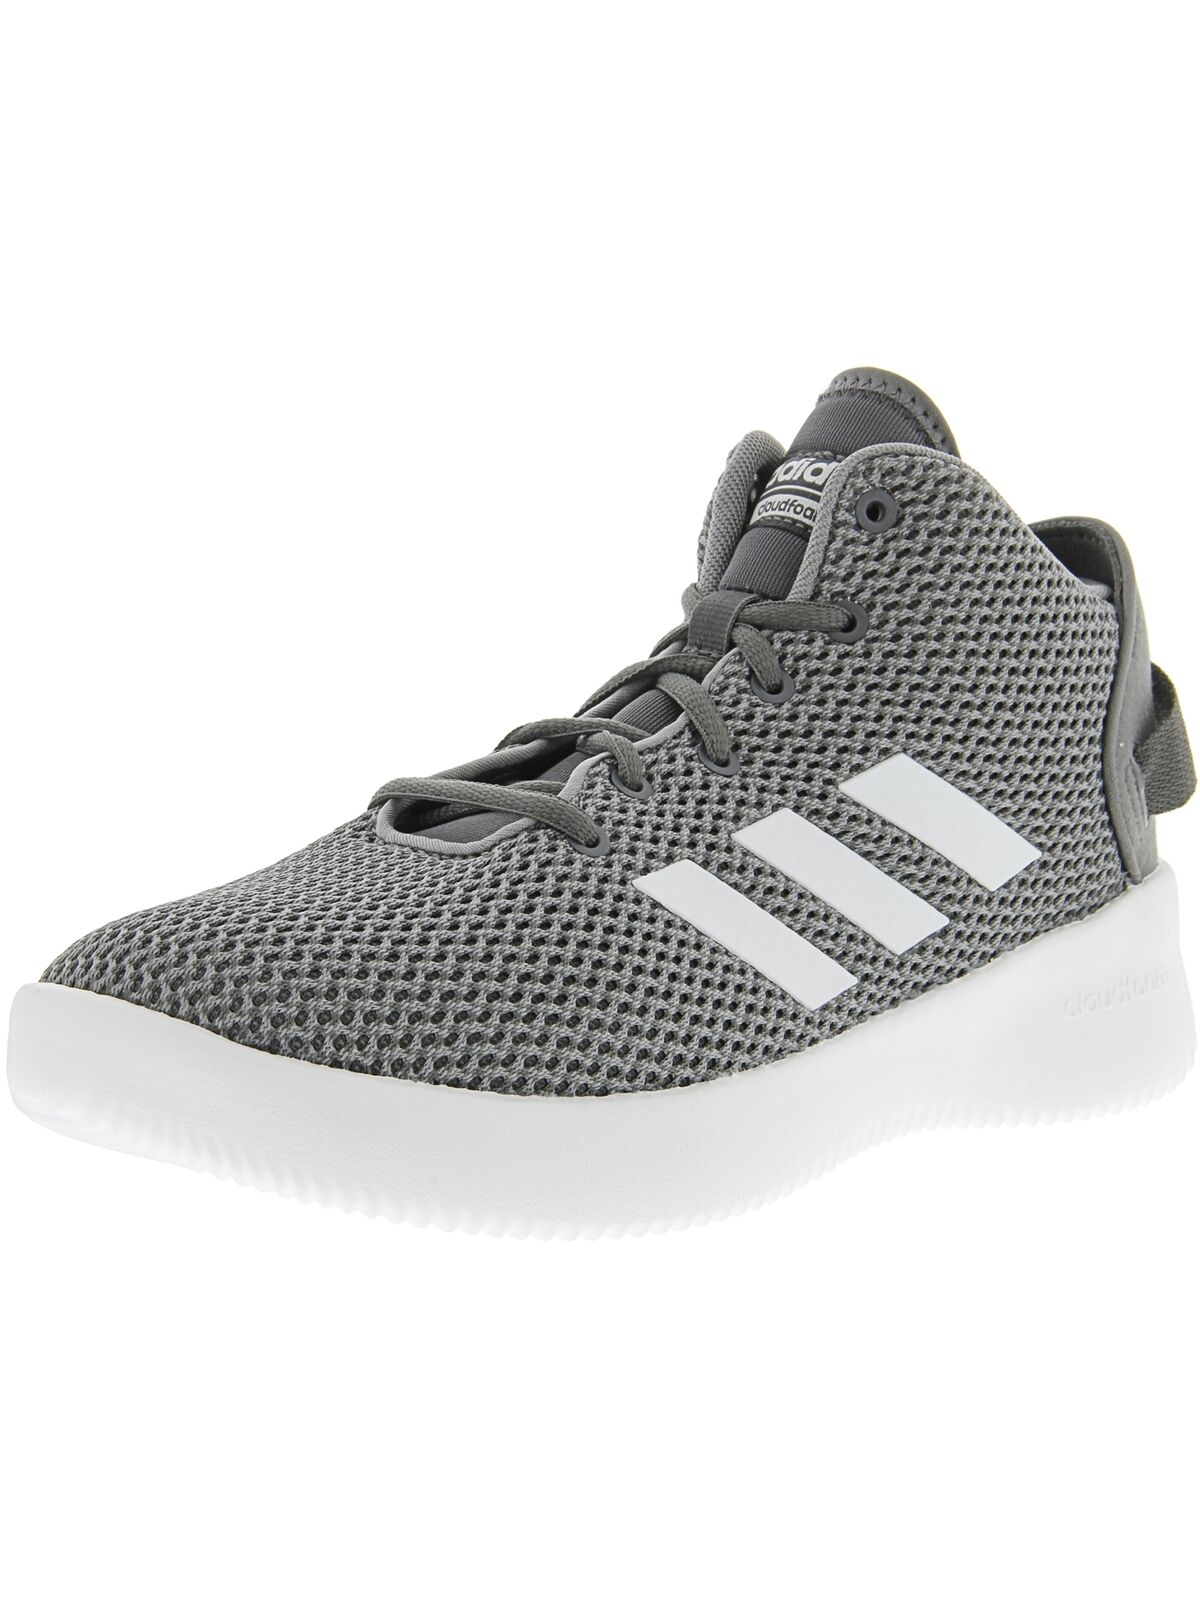 Adidas Men's Cf Refresh Mid Ankle-High Basketball shoes